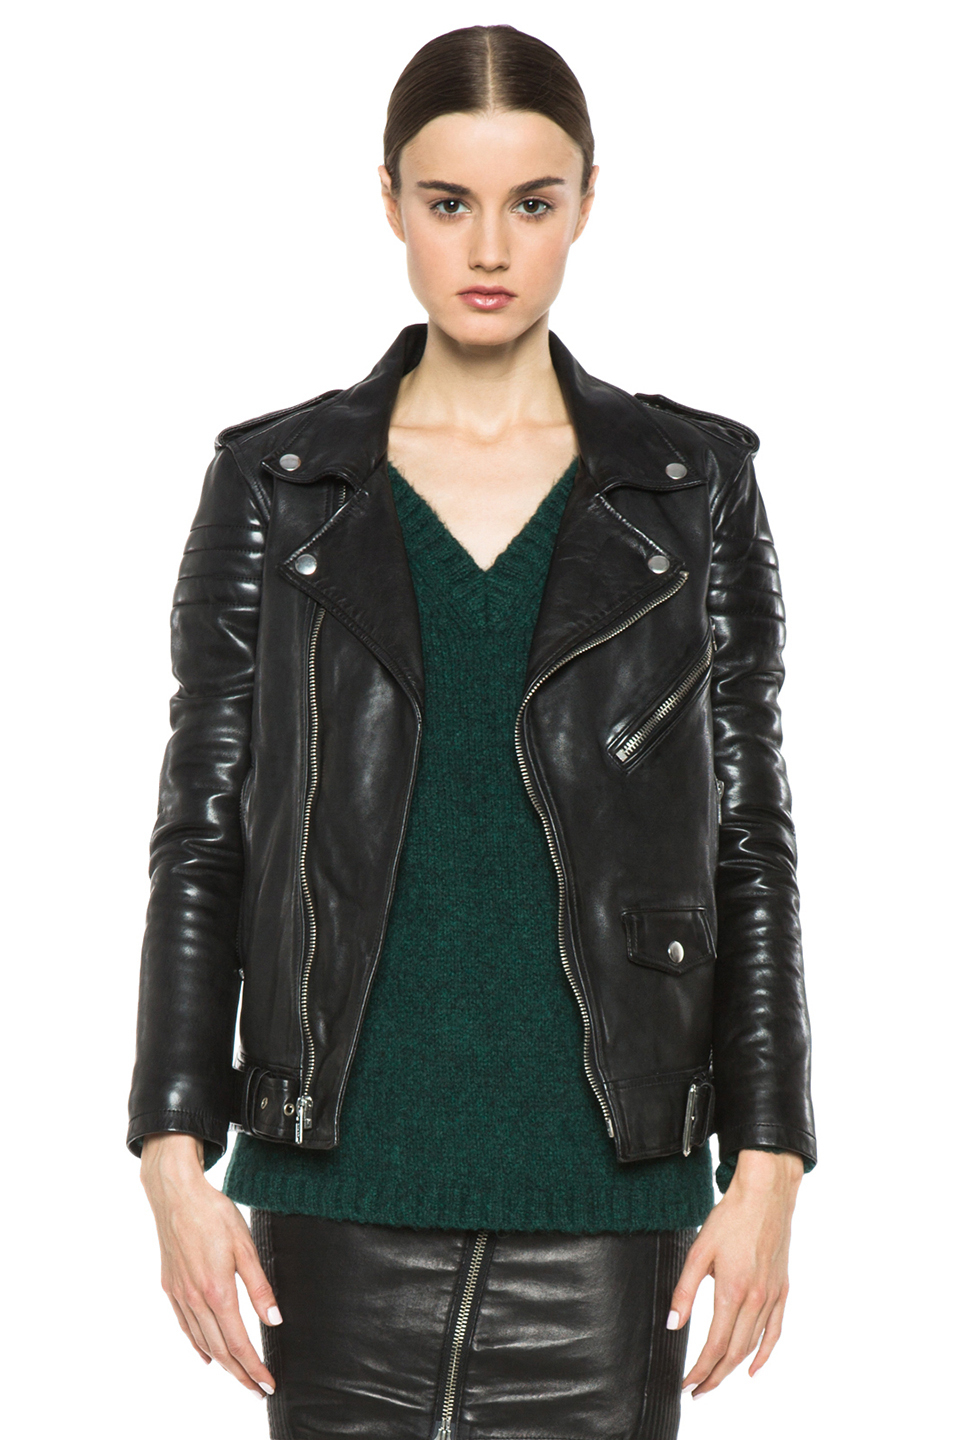 Lyst - Blk Dnm Leather Motorcycle Jacket In Black-3620